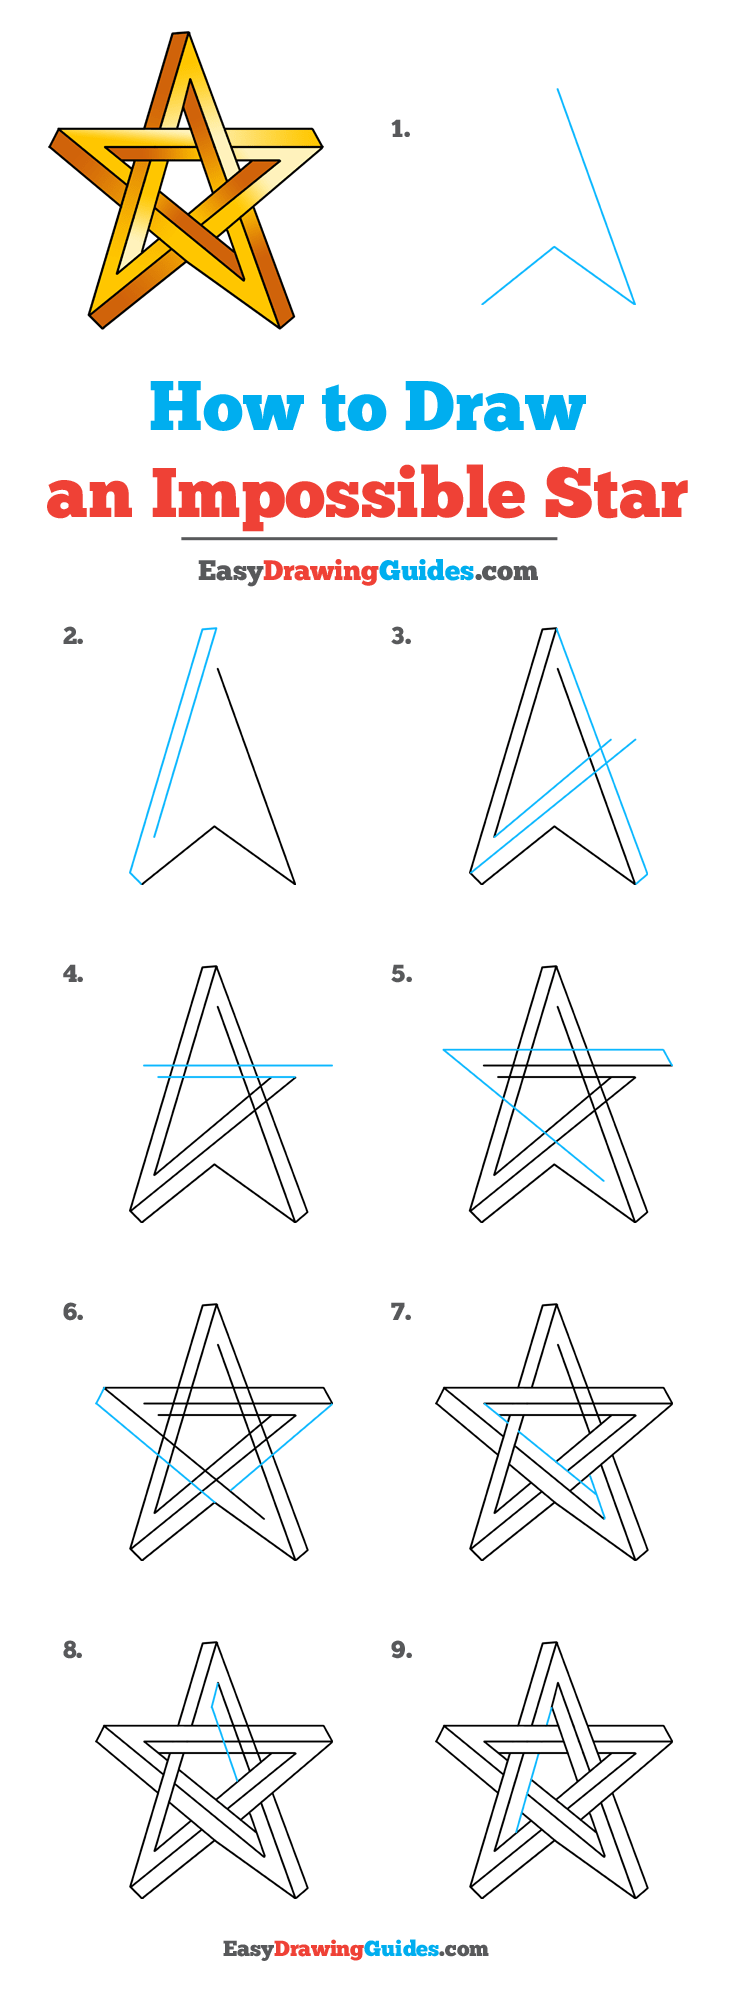 How to Draw an Impossible Star Pinterest Image